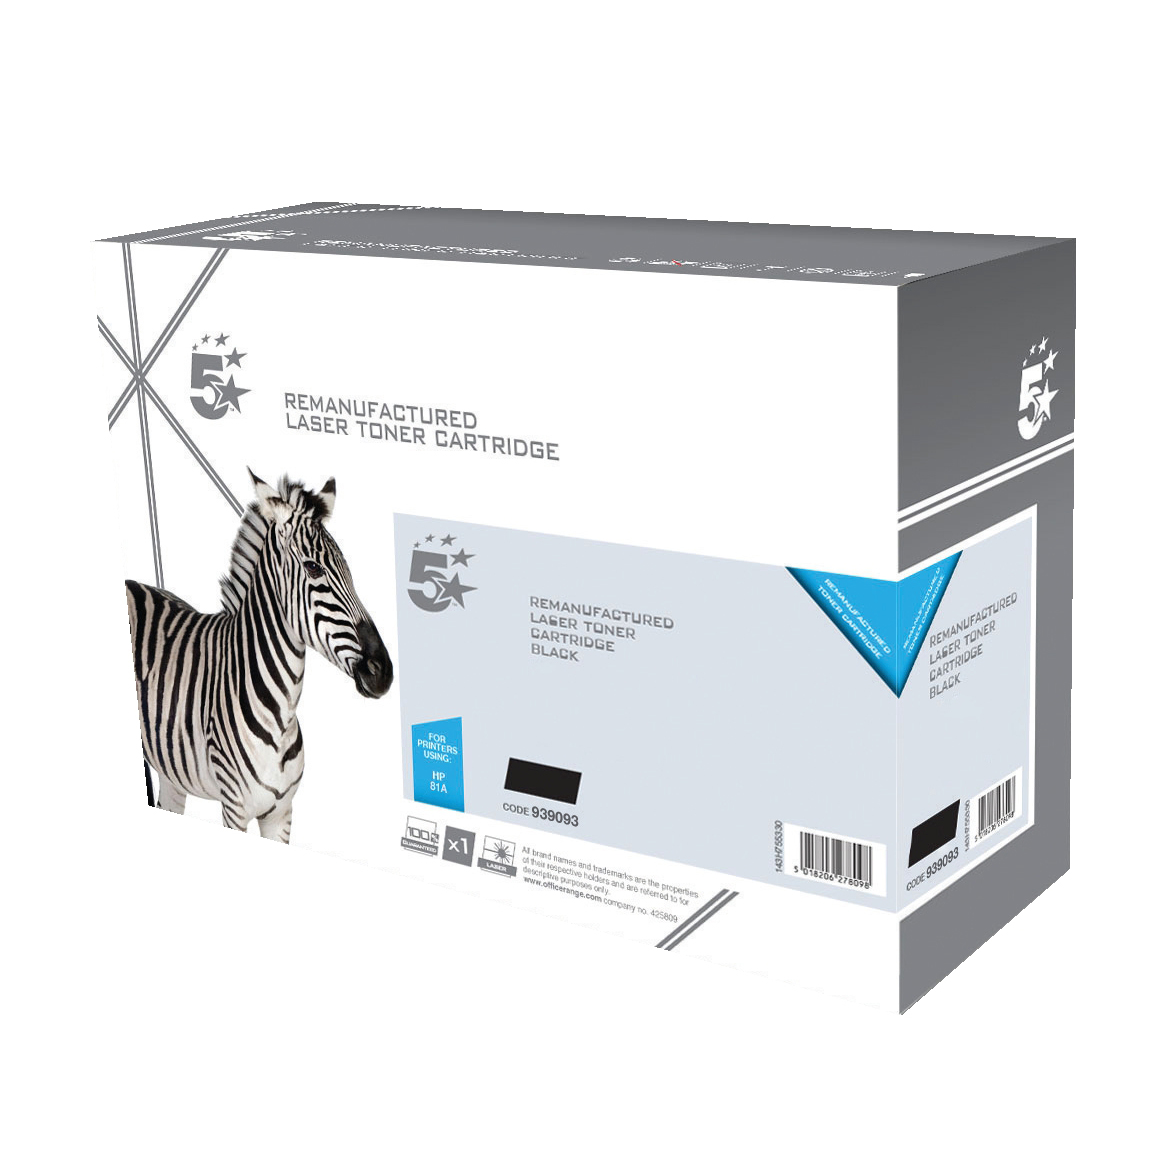 5 Star Office Remanufactured Laser Toner Cartridge HY Page Life 6500pp Black [HP 410X CF410X Alternative]